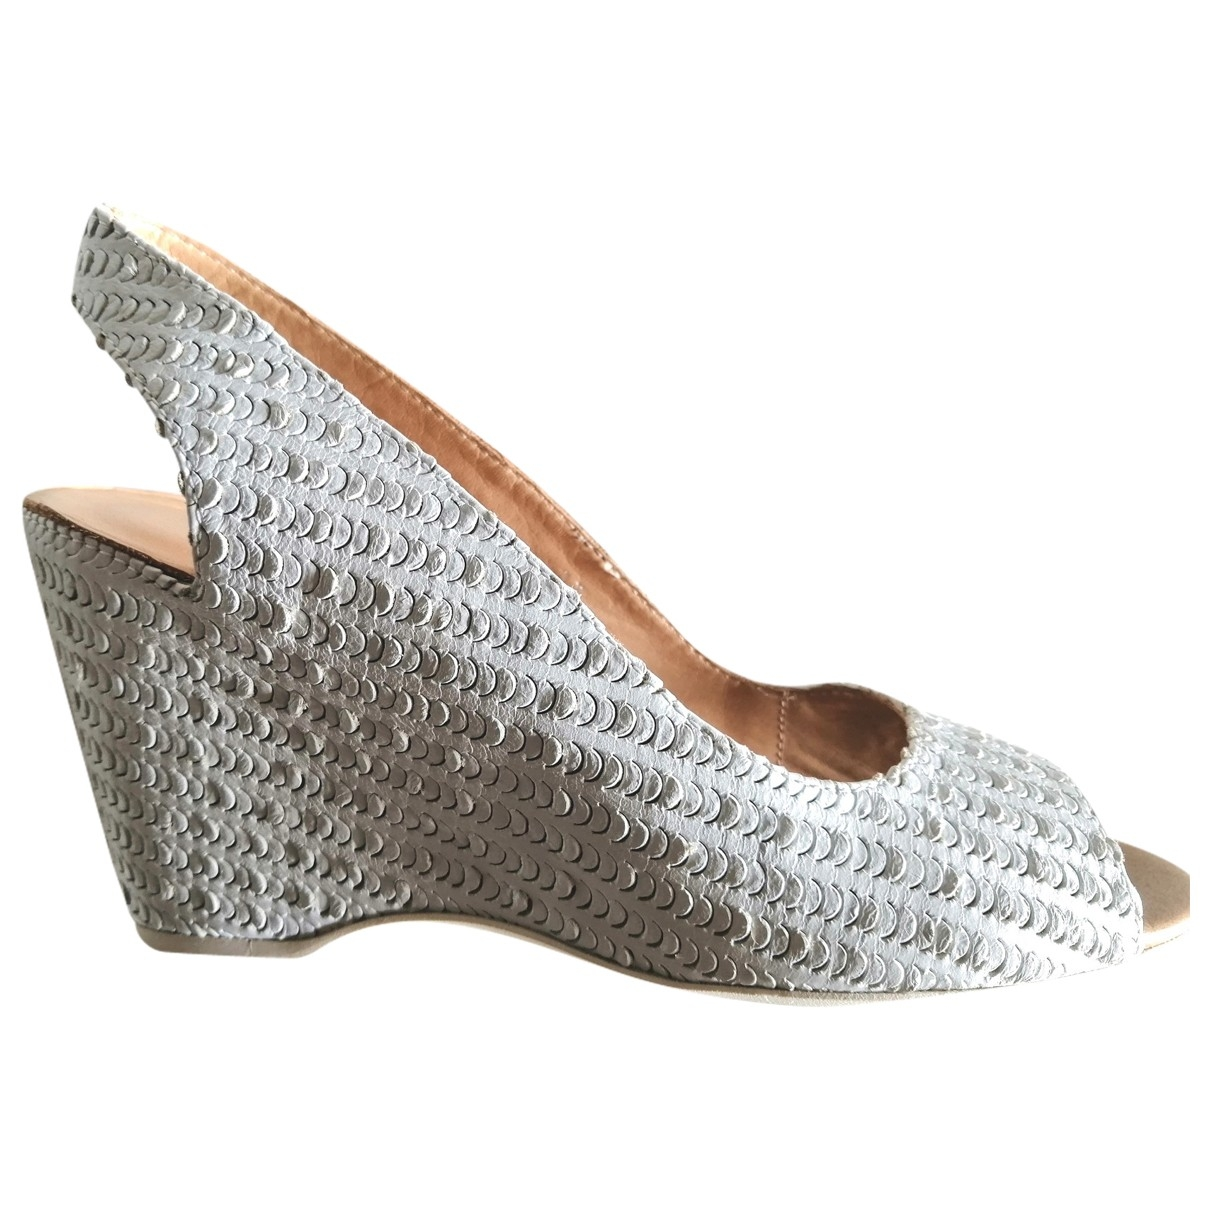 Mm6 \N White Leather Sandals for Women 37 EU